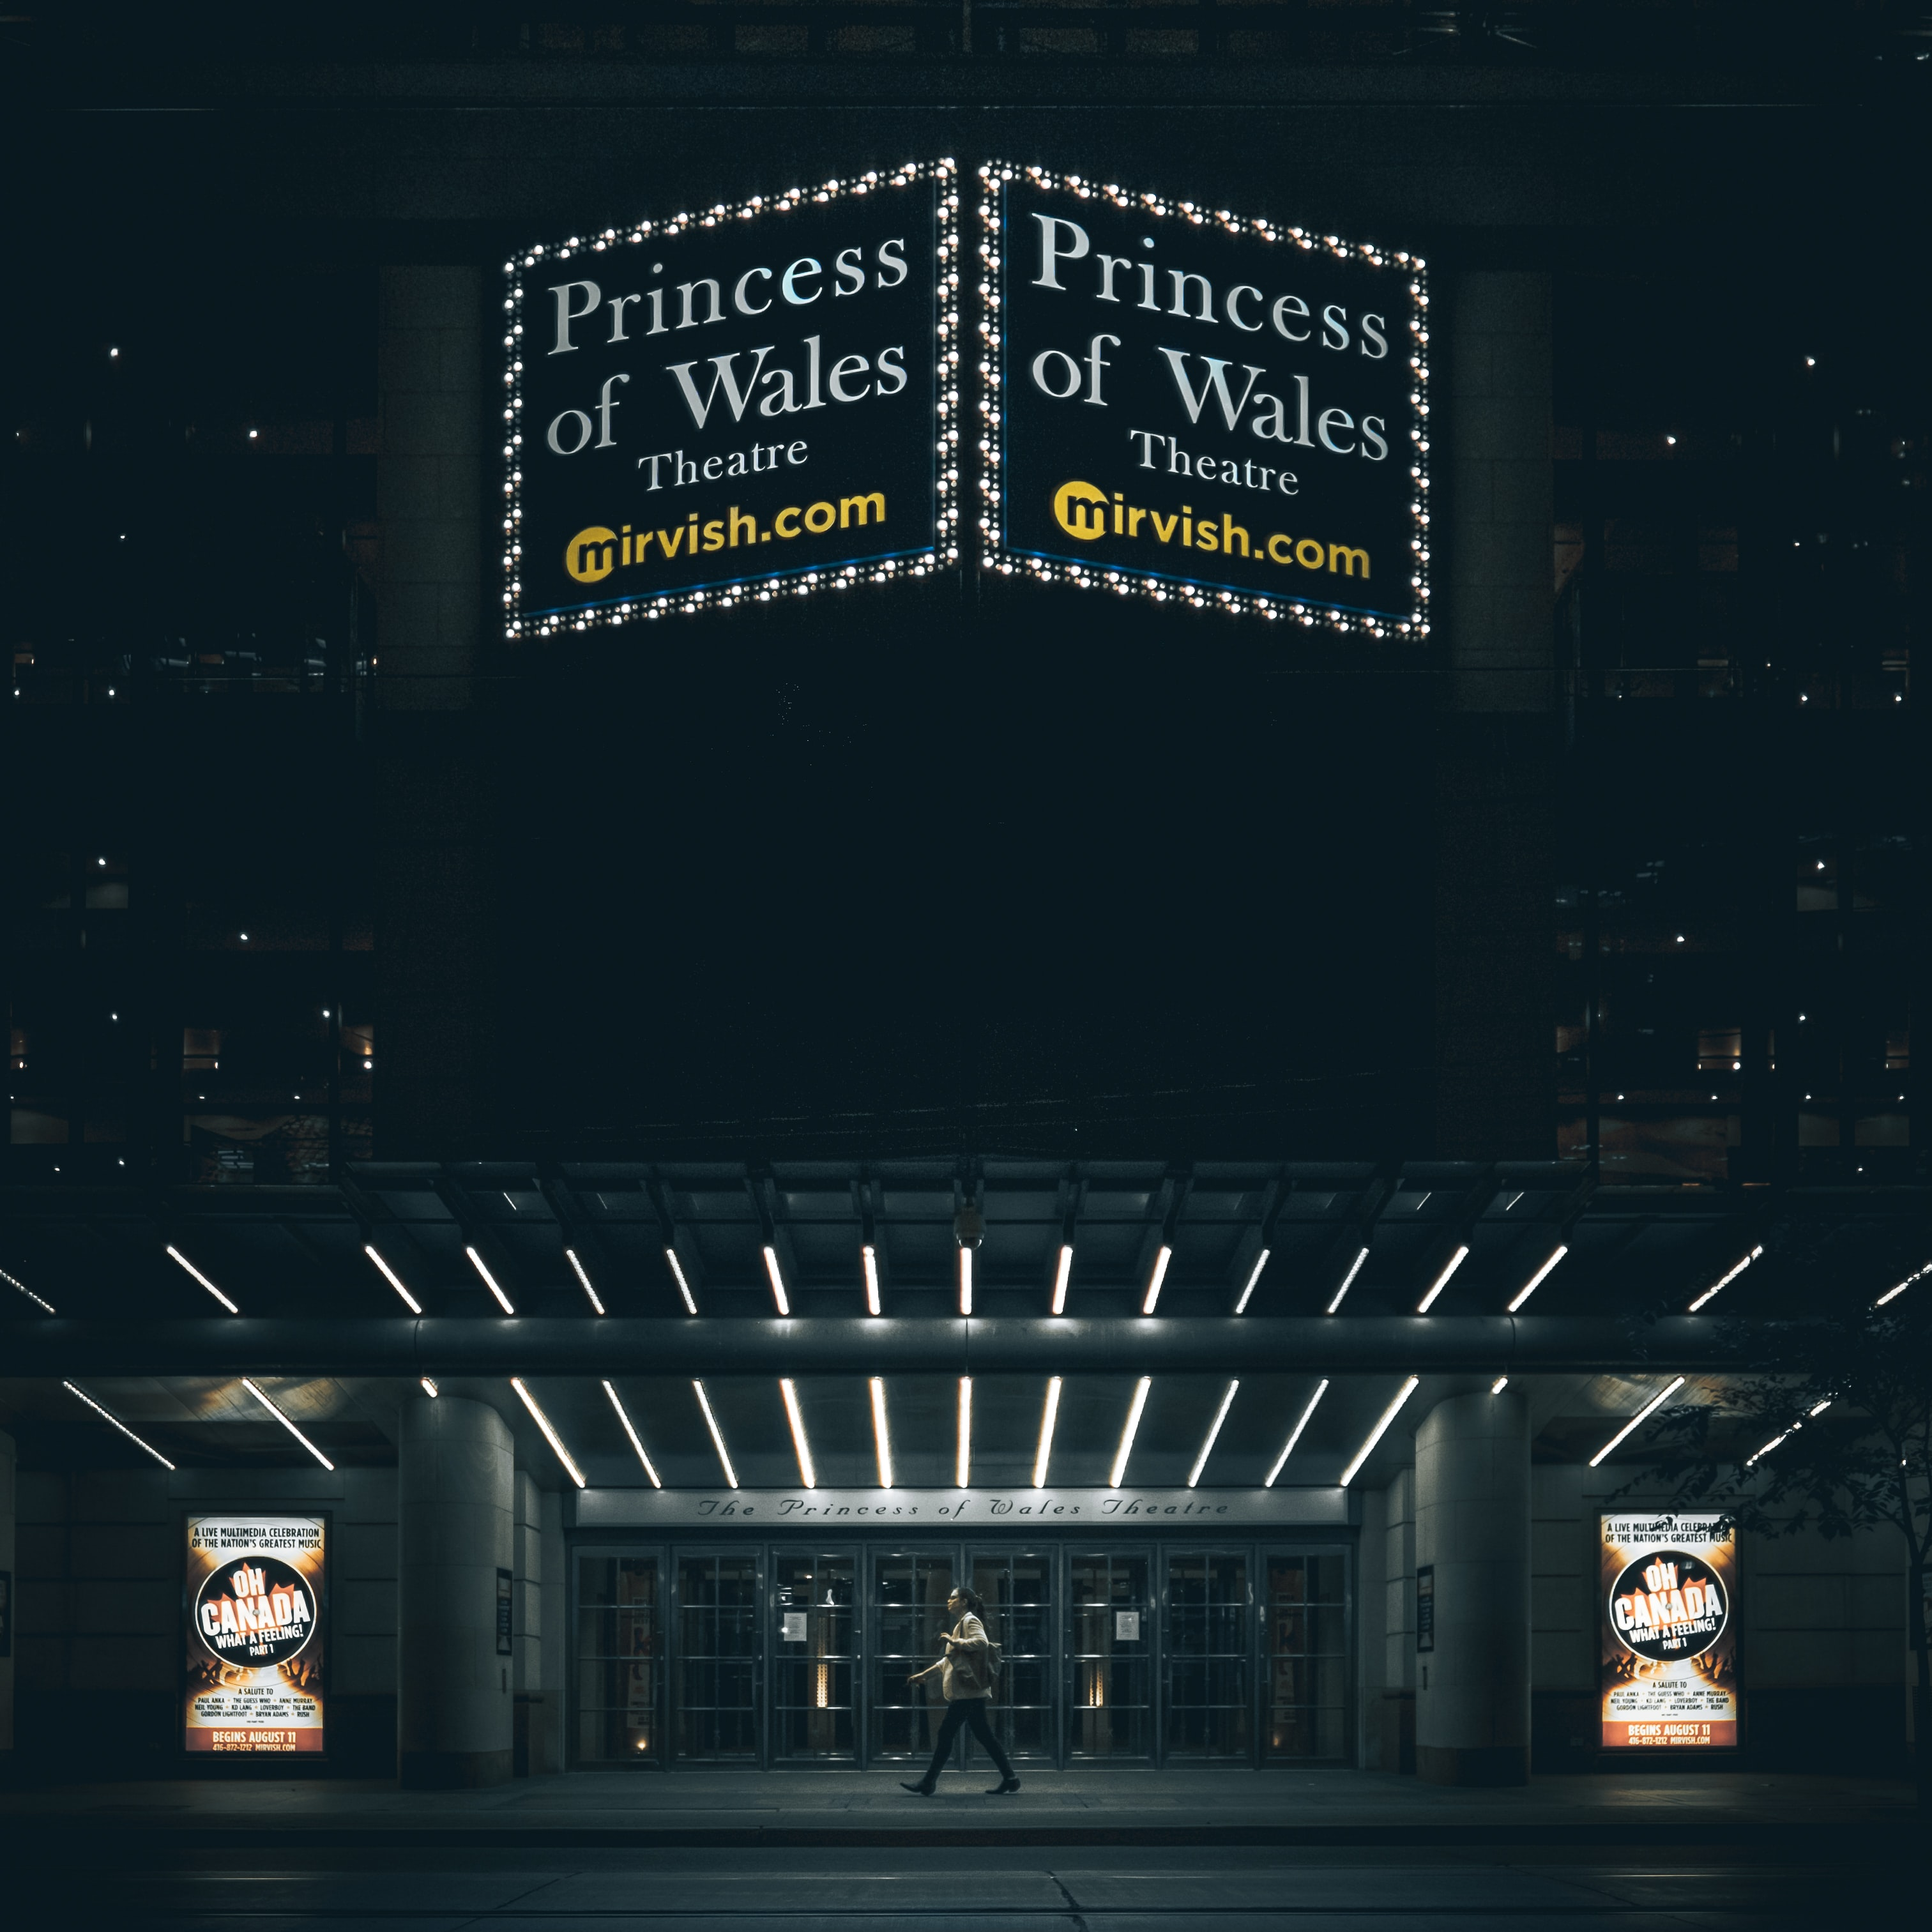 Princess of Wales theater signage during nighttime